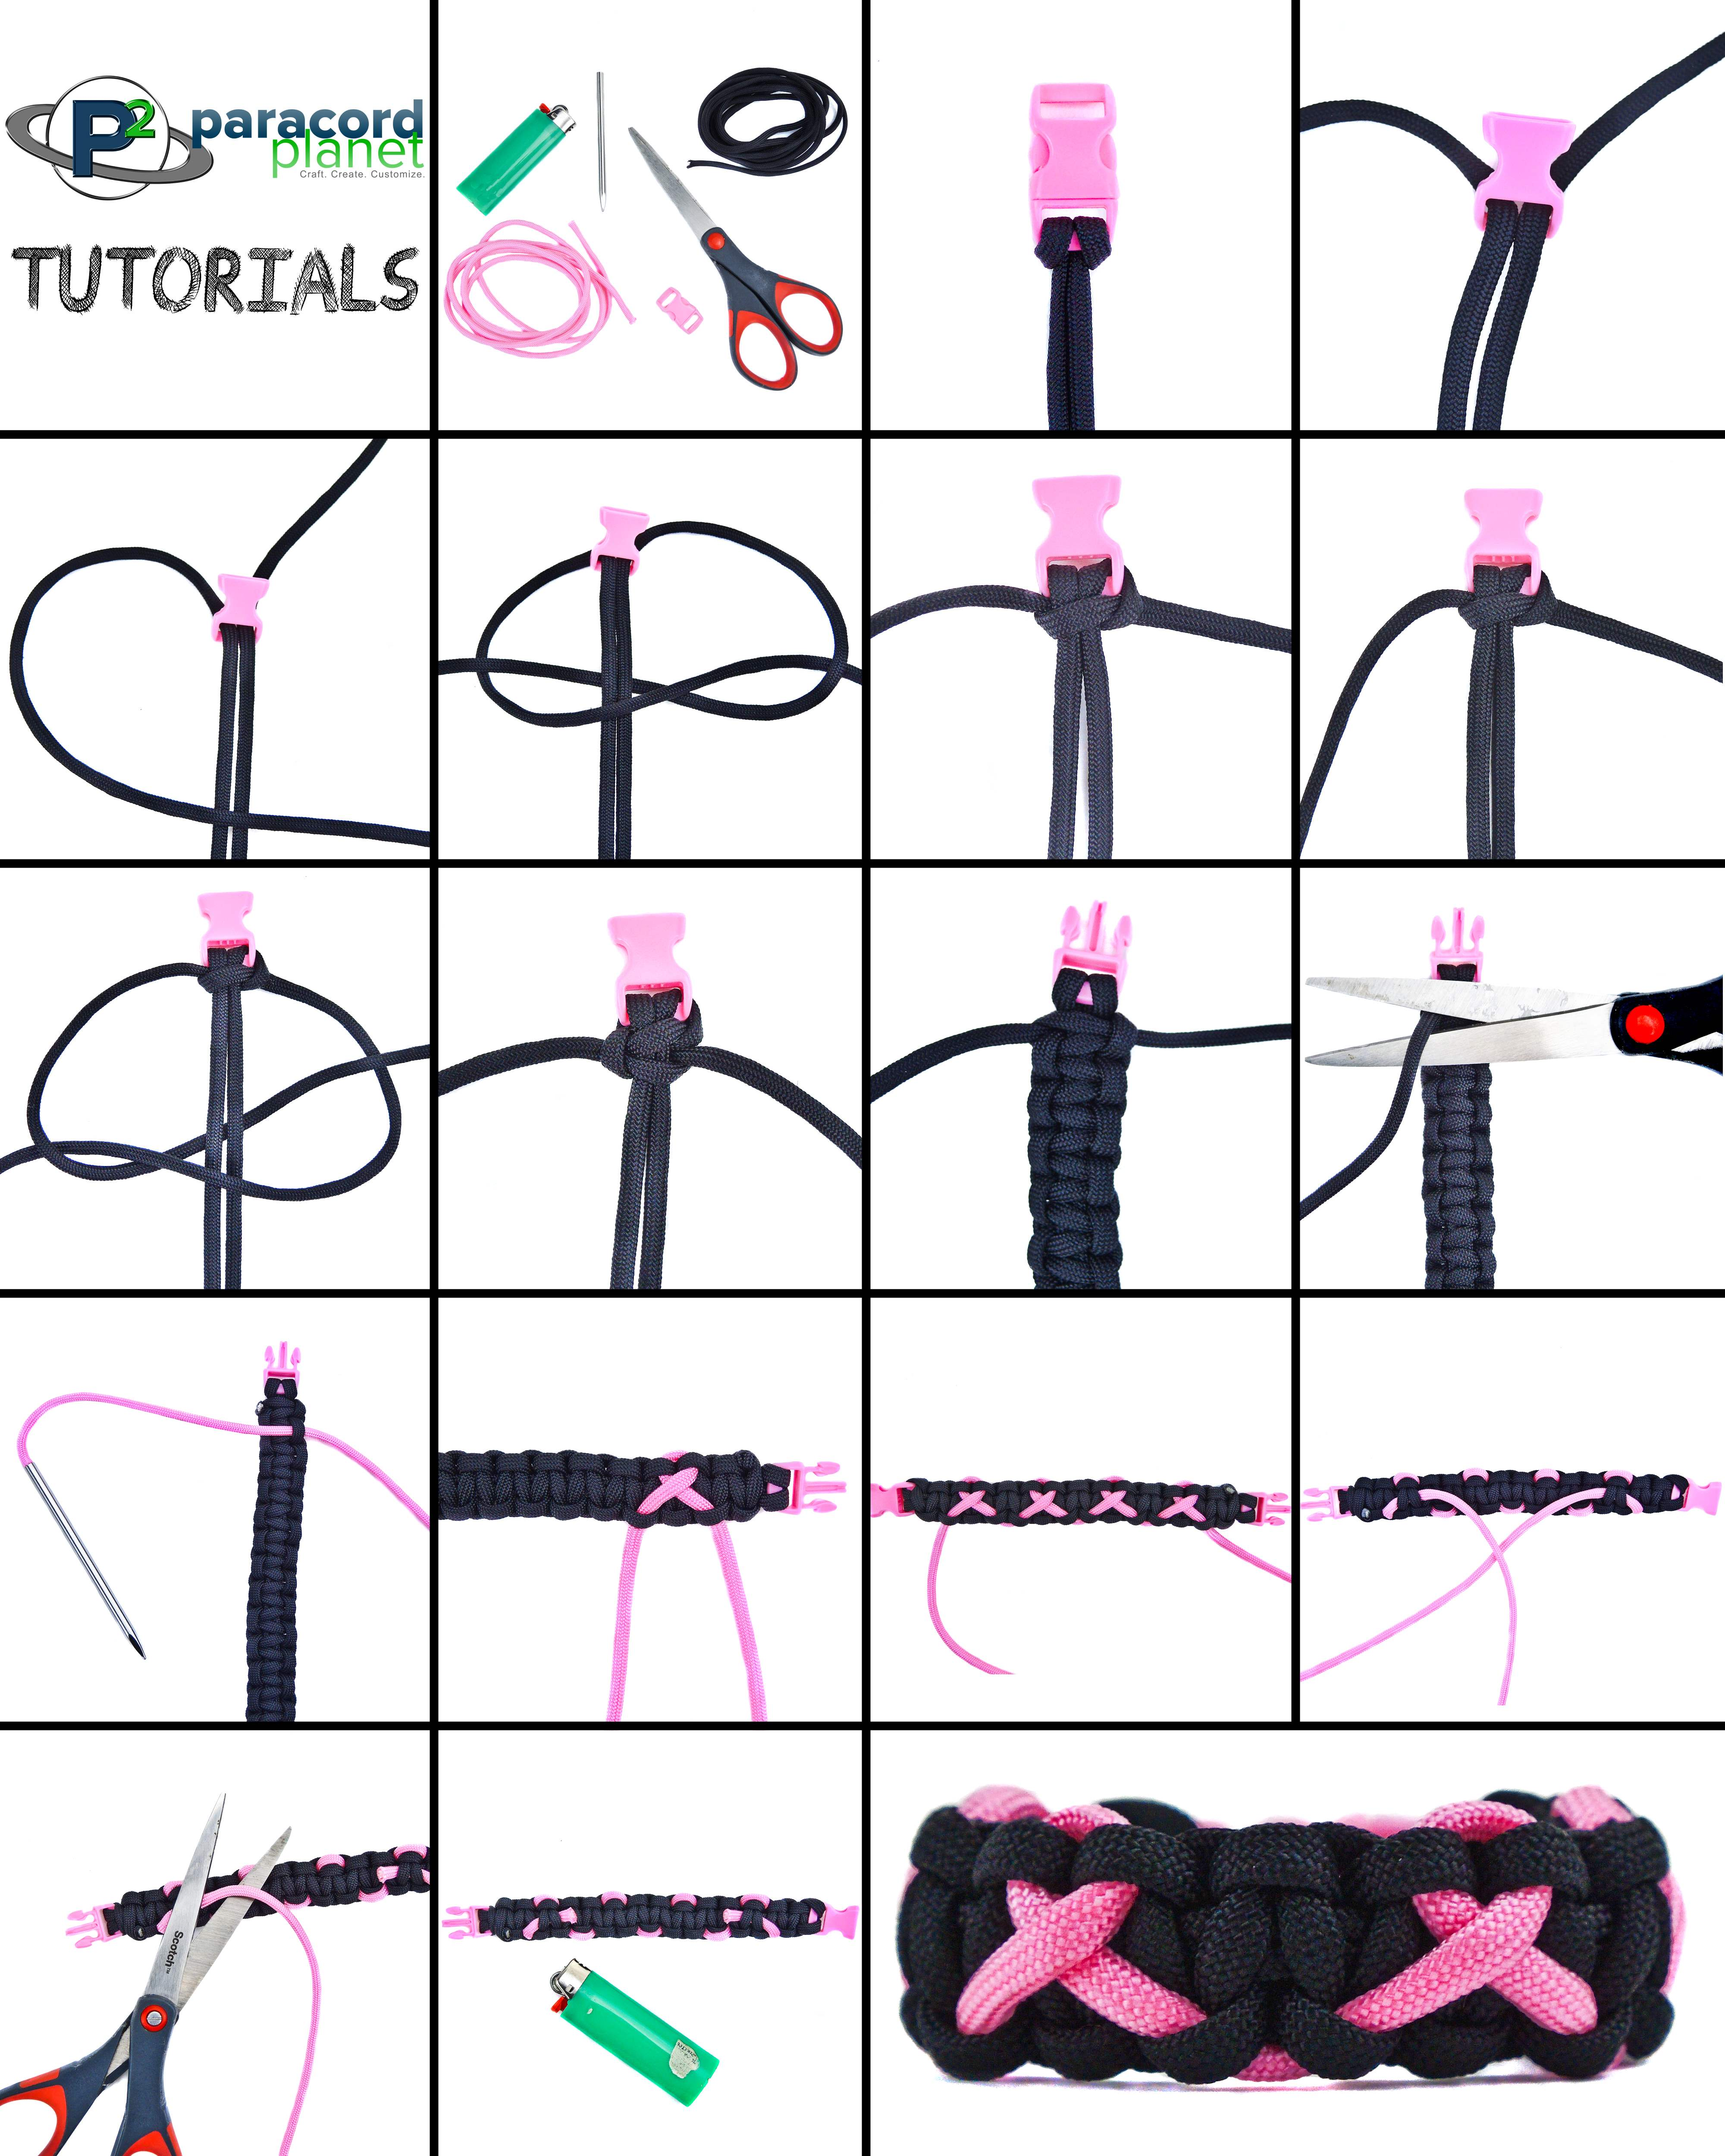 Paracord Breast Cancer Awareness Bracelet photo tutorial